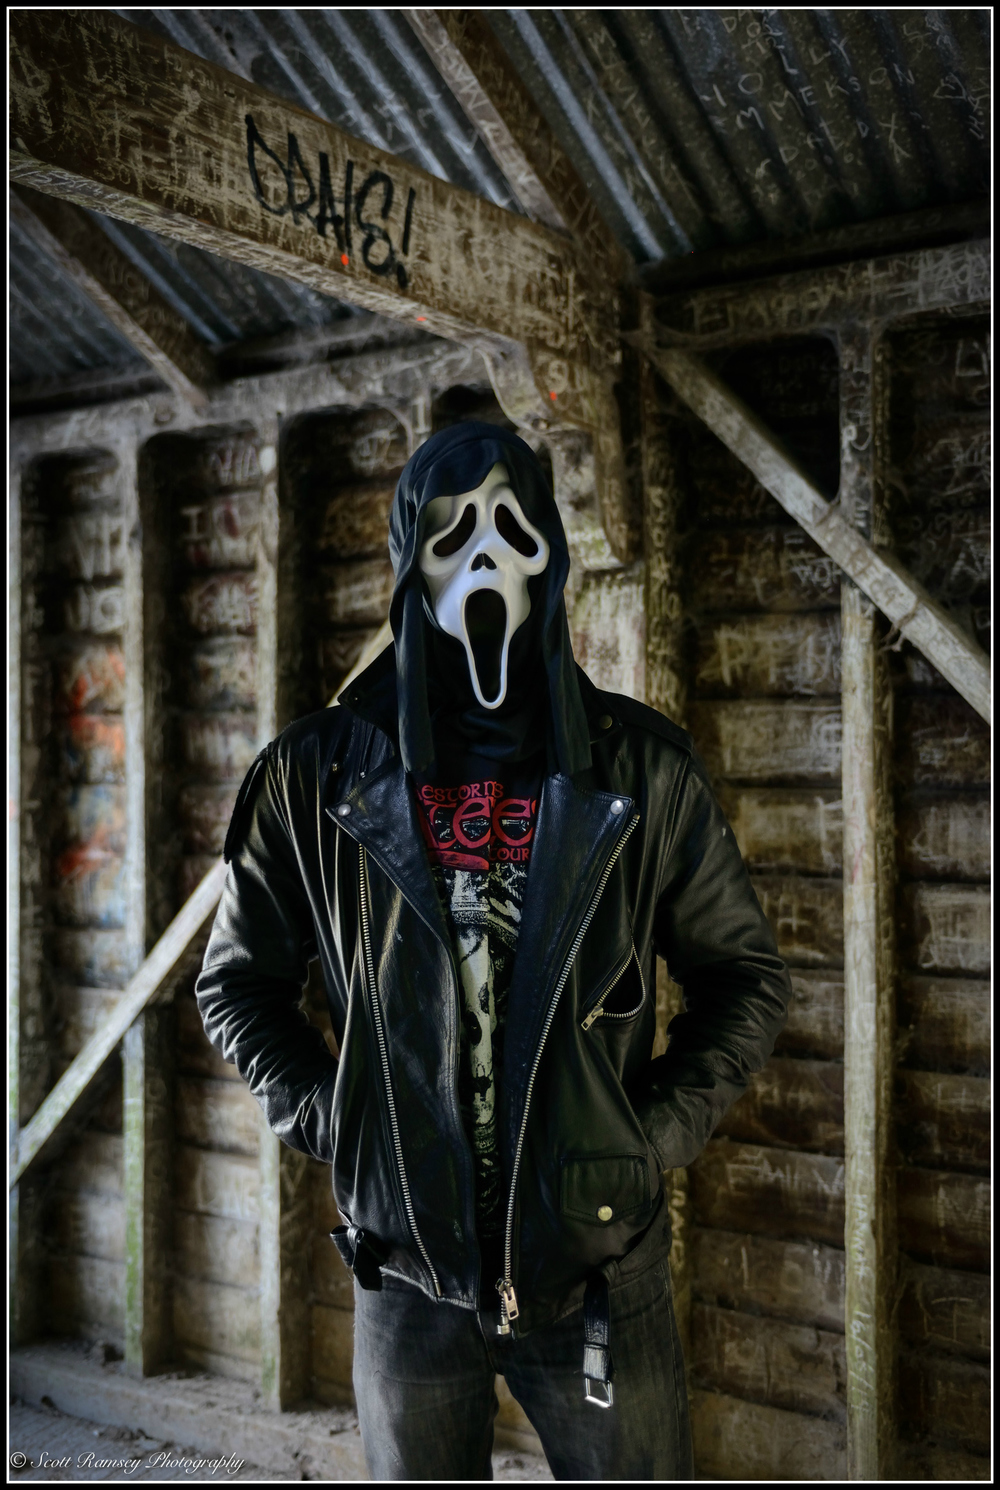 He's got the look! A Halloween photo taken in an abandoned boat house. © Scott Ramsey Photography